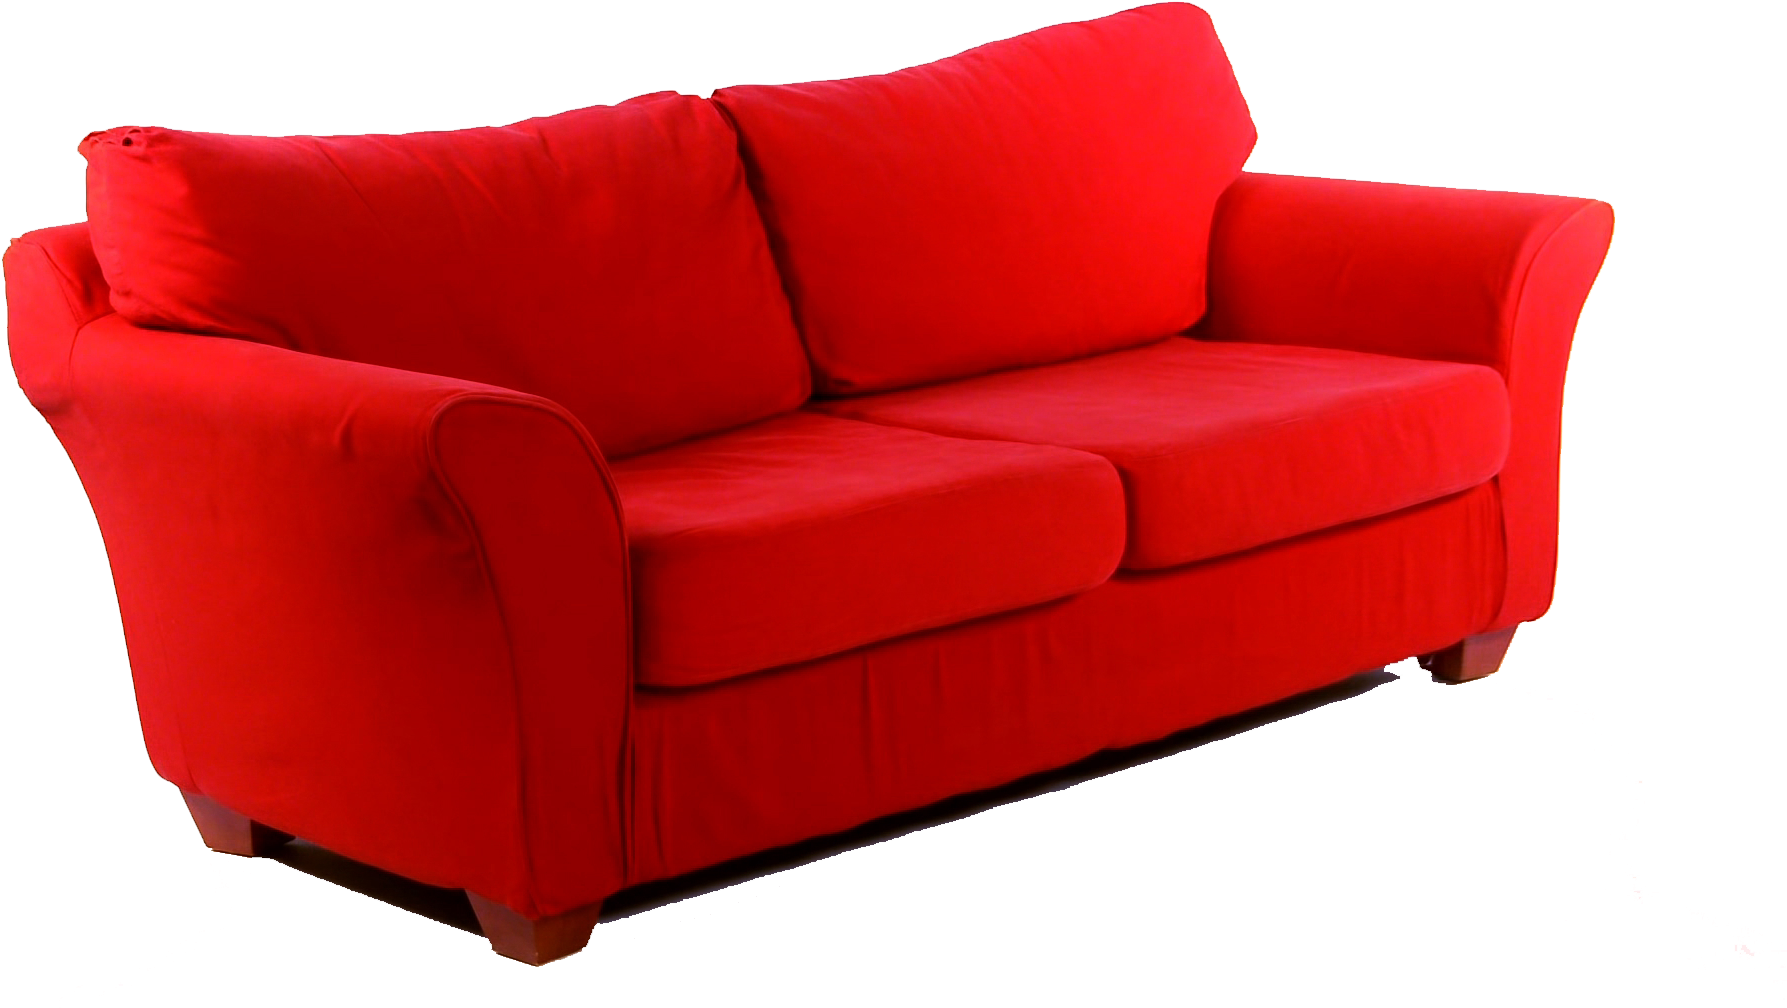 Red Sofa 2 To Home And Interior Property Plan With Couch Full